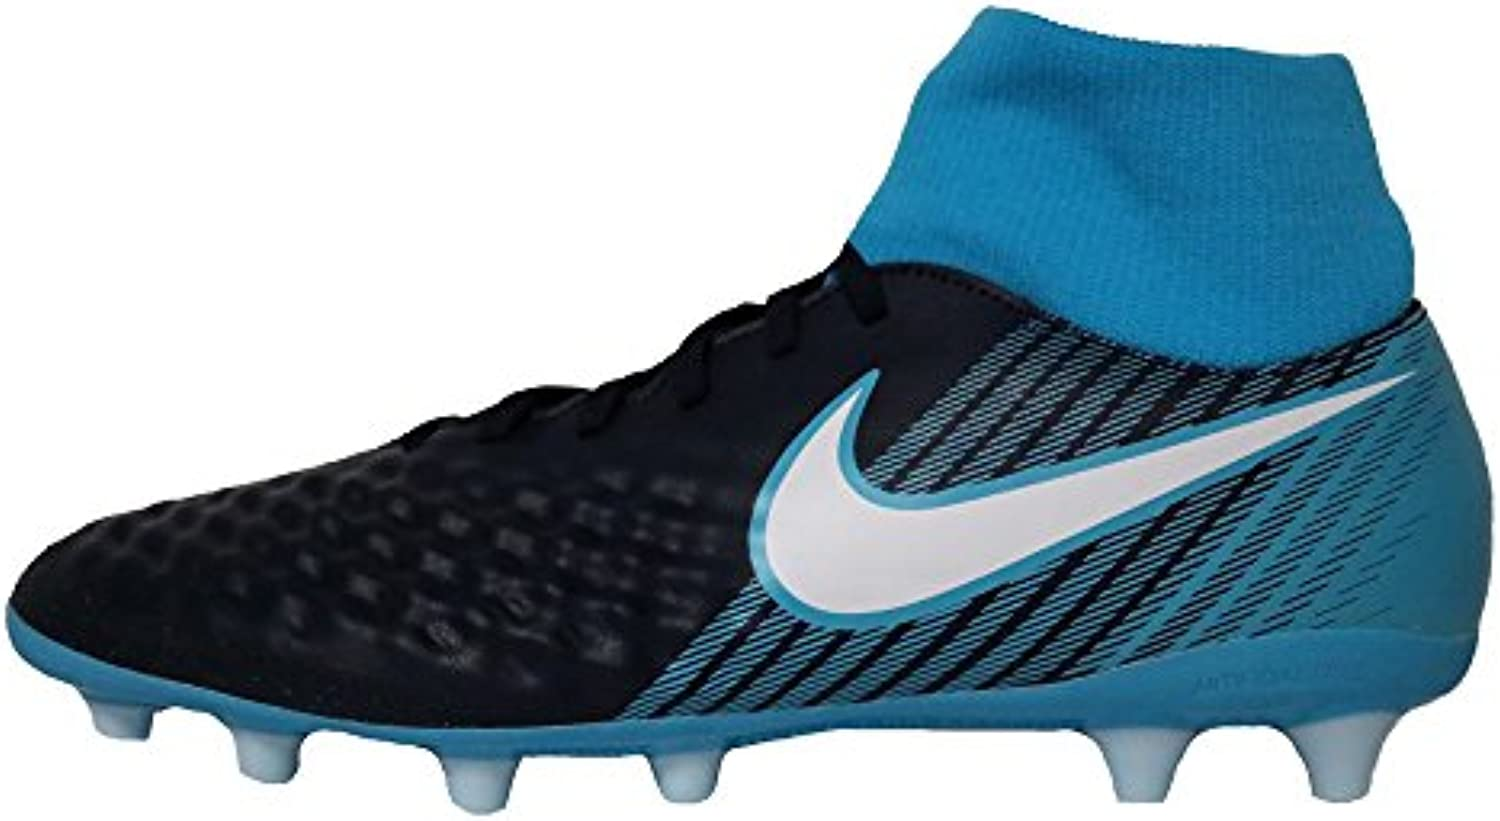 917786 414 Men's Nike Magista Onda II Dynamic Fit AG Pro